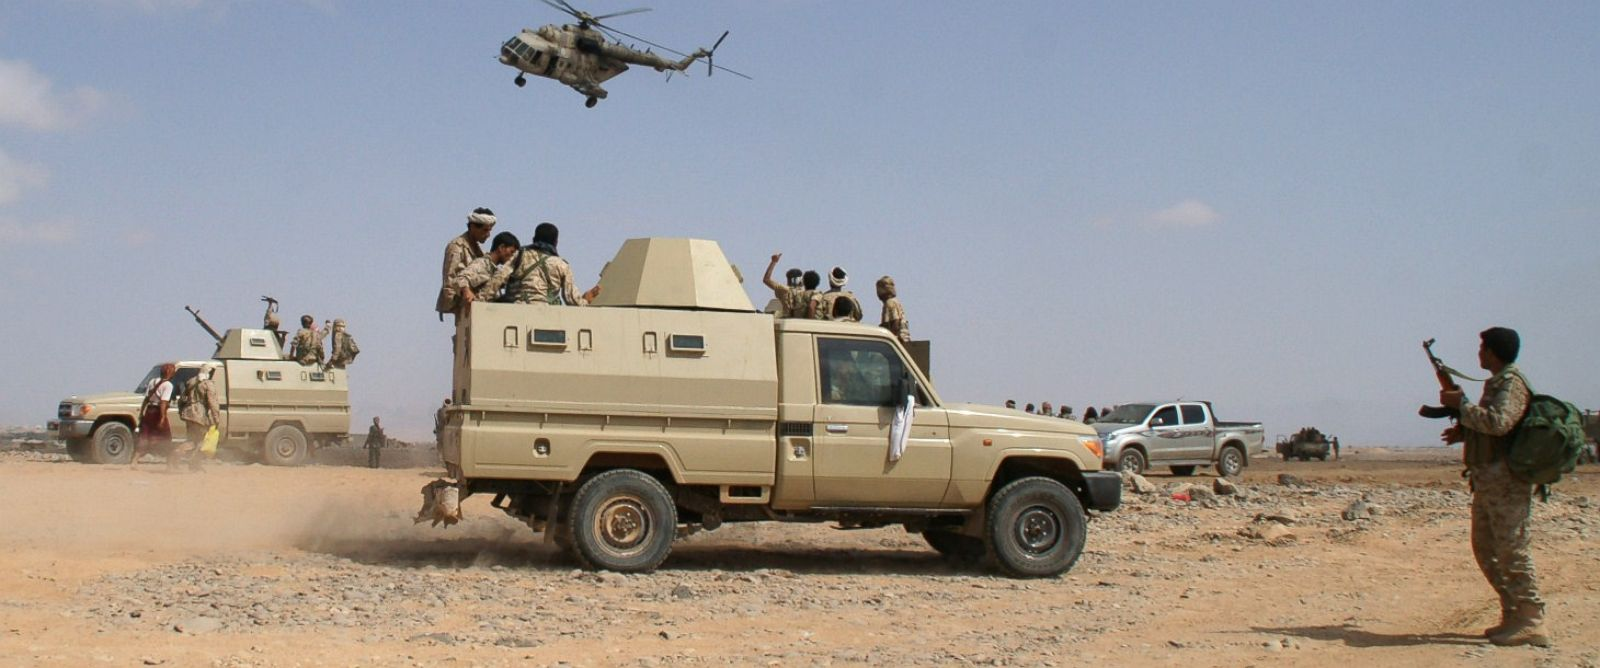 PHOTO: Yemeni troops take part in an offensive against extremists in the southern province of Shabwa on May 7, 2014.